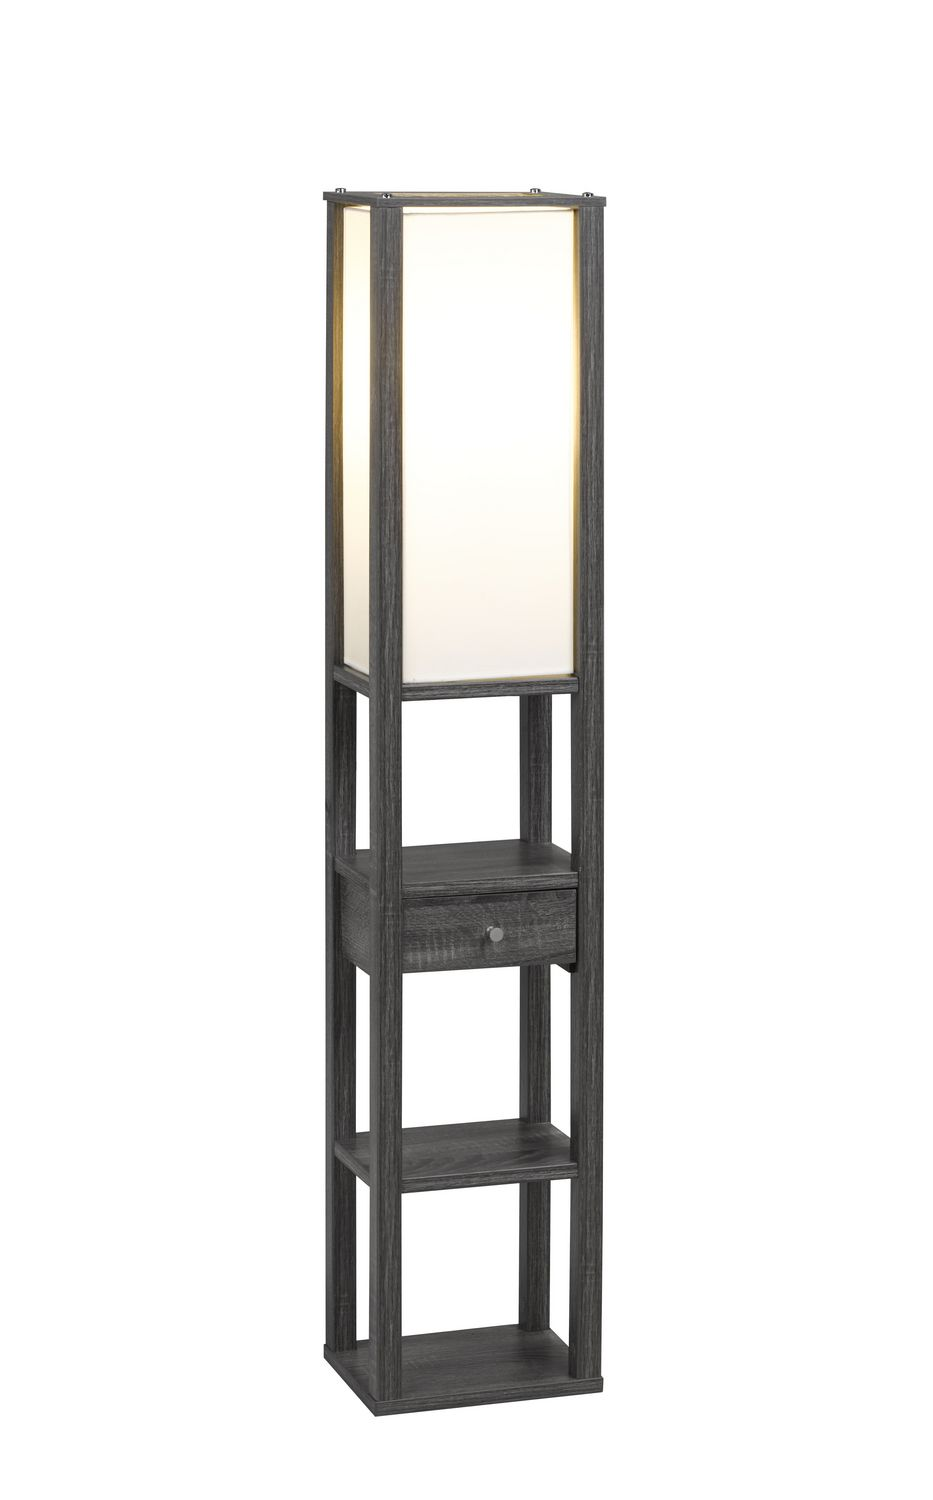 floor lamp shelf wood product with insert sales usdb store frame a